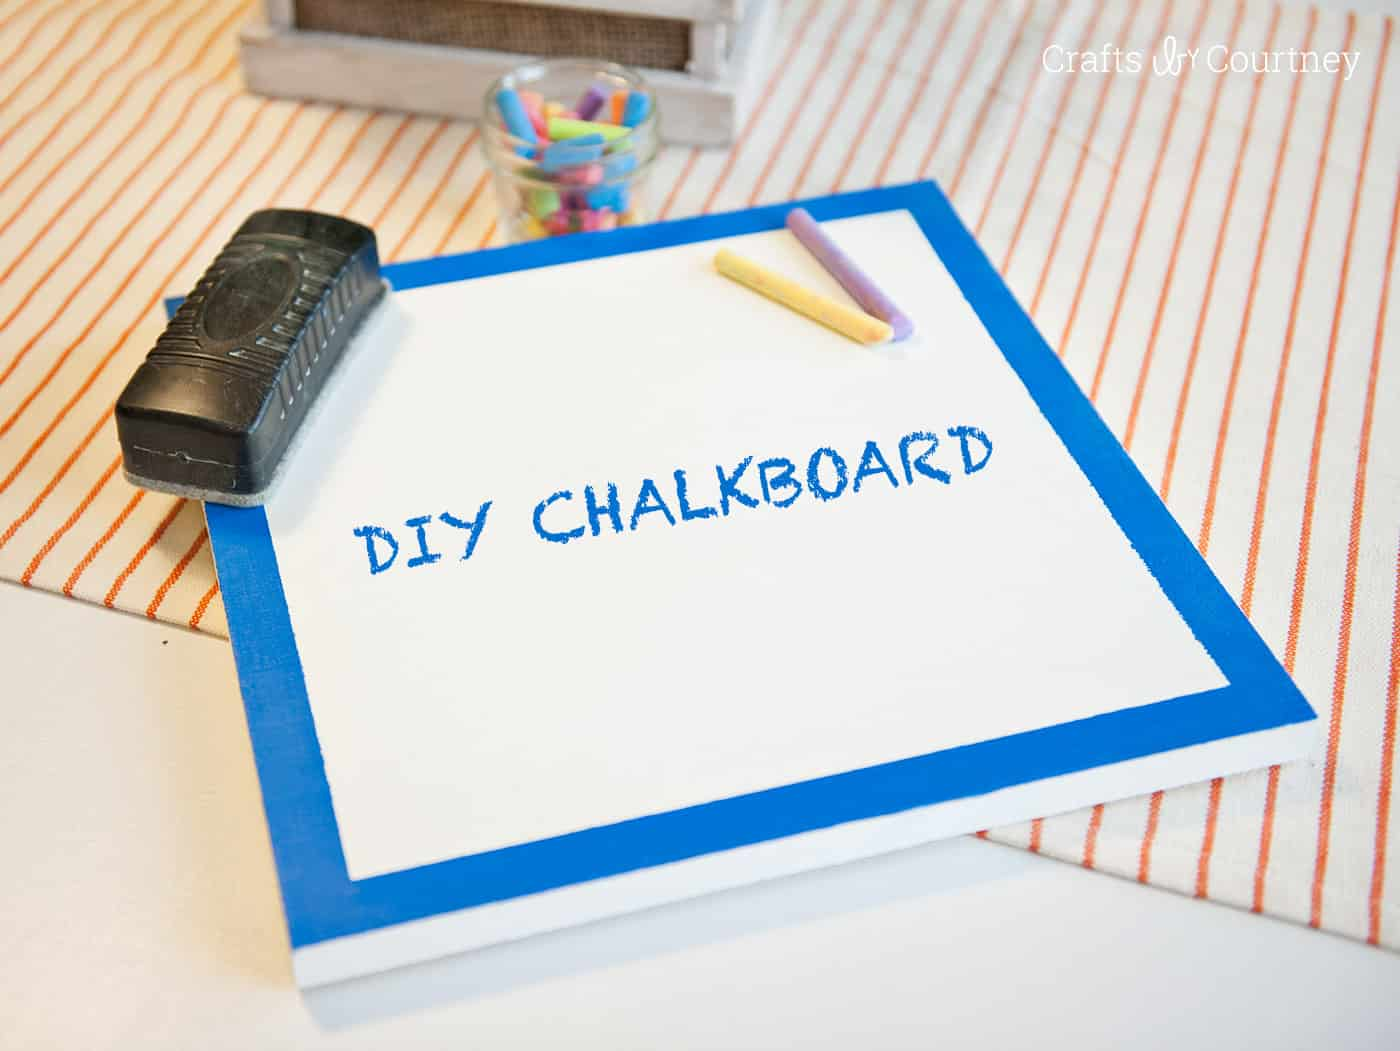 It's so easy to make a DIY chalkboard out of cut wood! You can have any color of paint underneath using a cool, clear chalkboard topcoat.